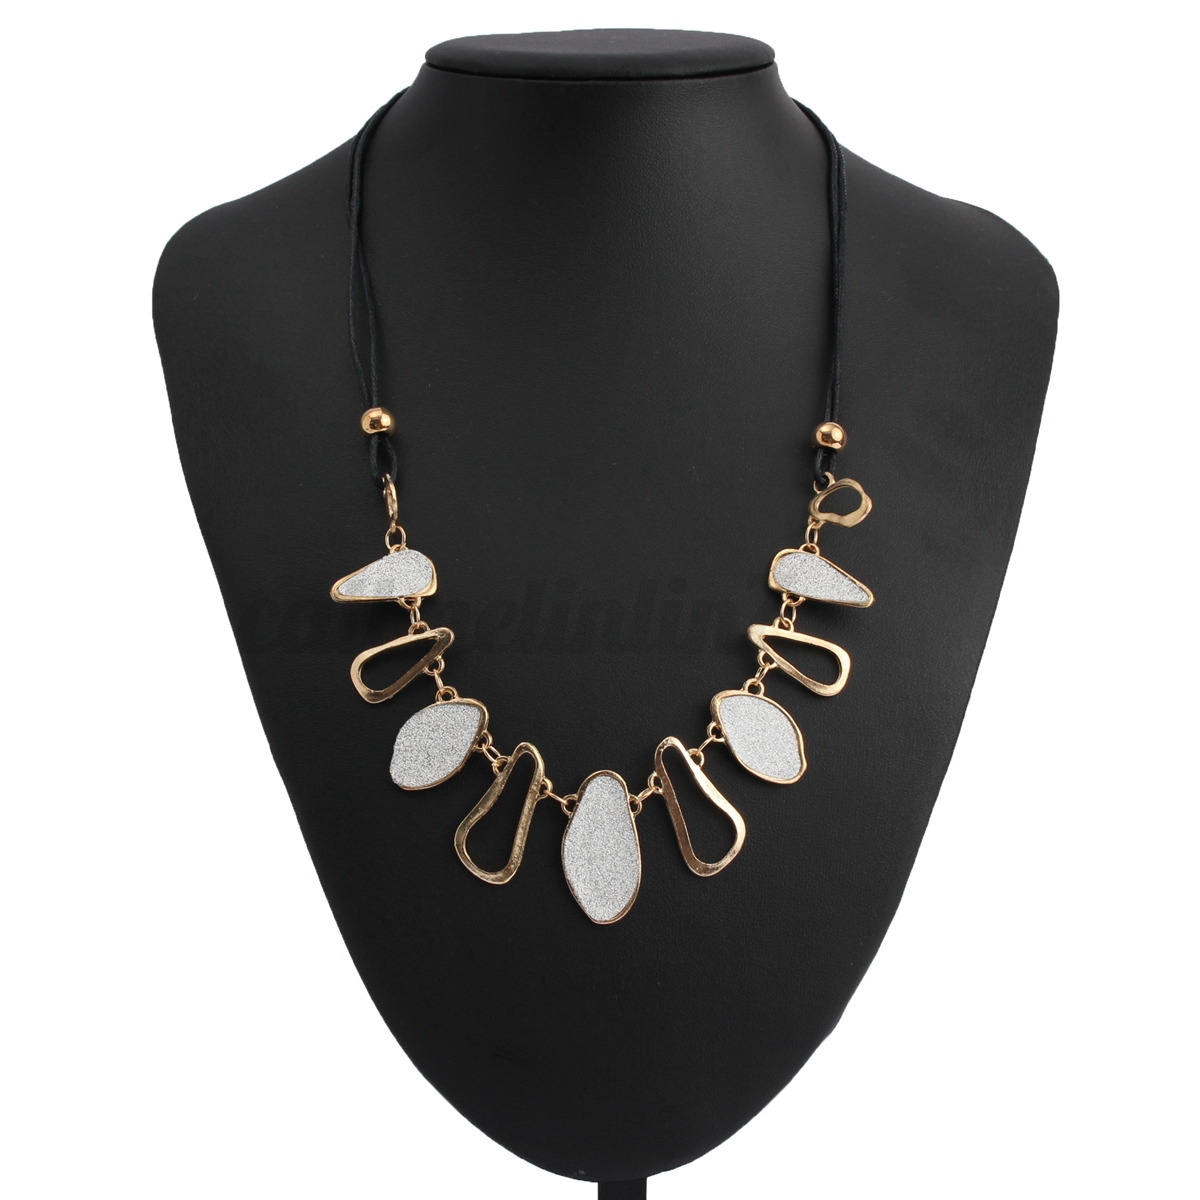 collier choker chunky bib ras de cou pendentif cristal bijoux cha ne femme fleur ebay. Black Bedroom Furniture Sets. Home Design Ideas